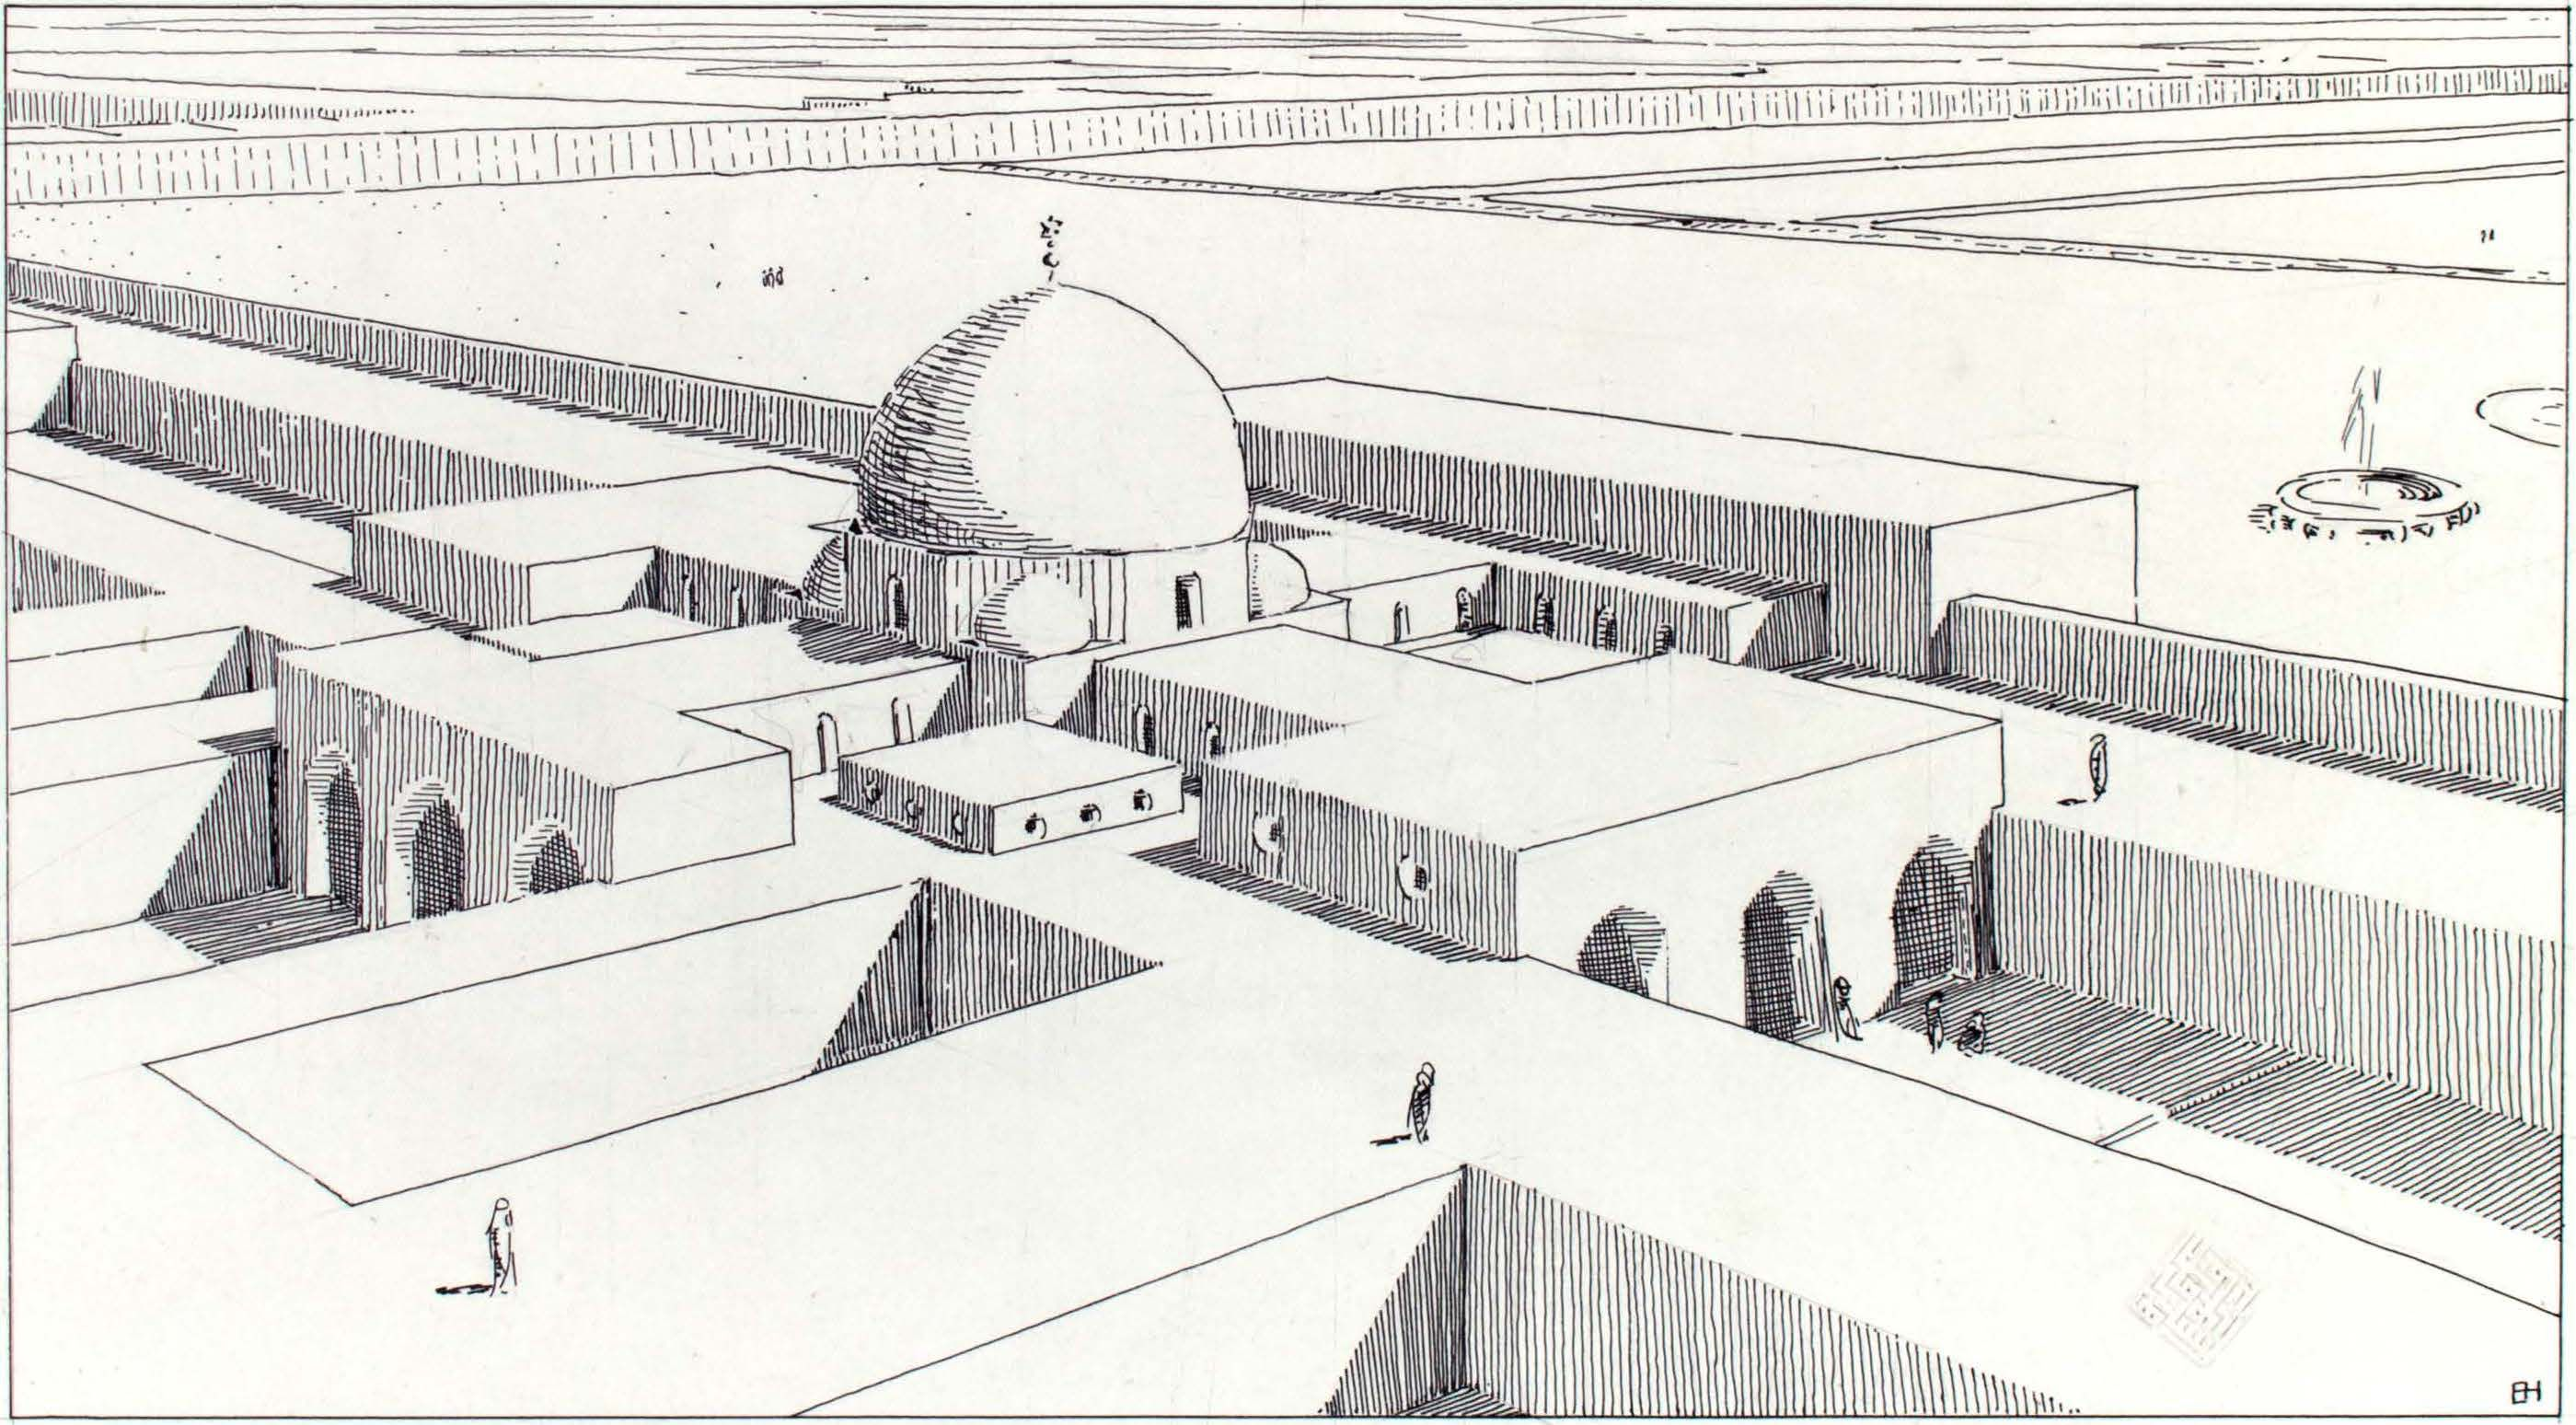 No Place Like Dome: The excavation of the Samarra Palace of the Caliph.